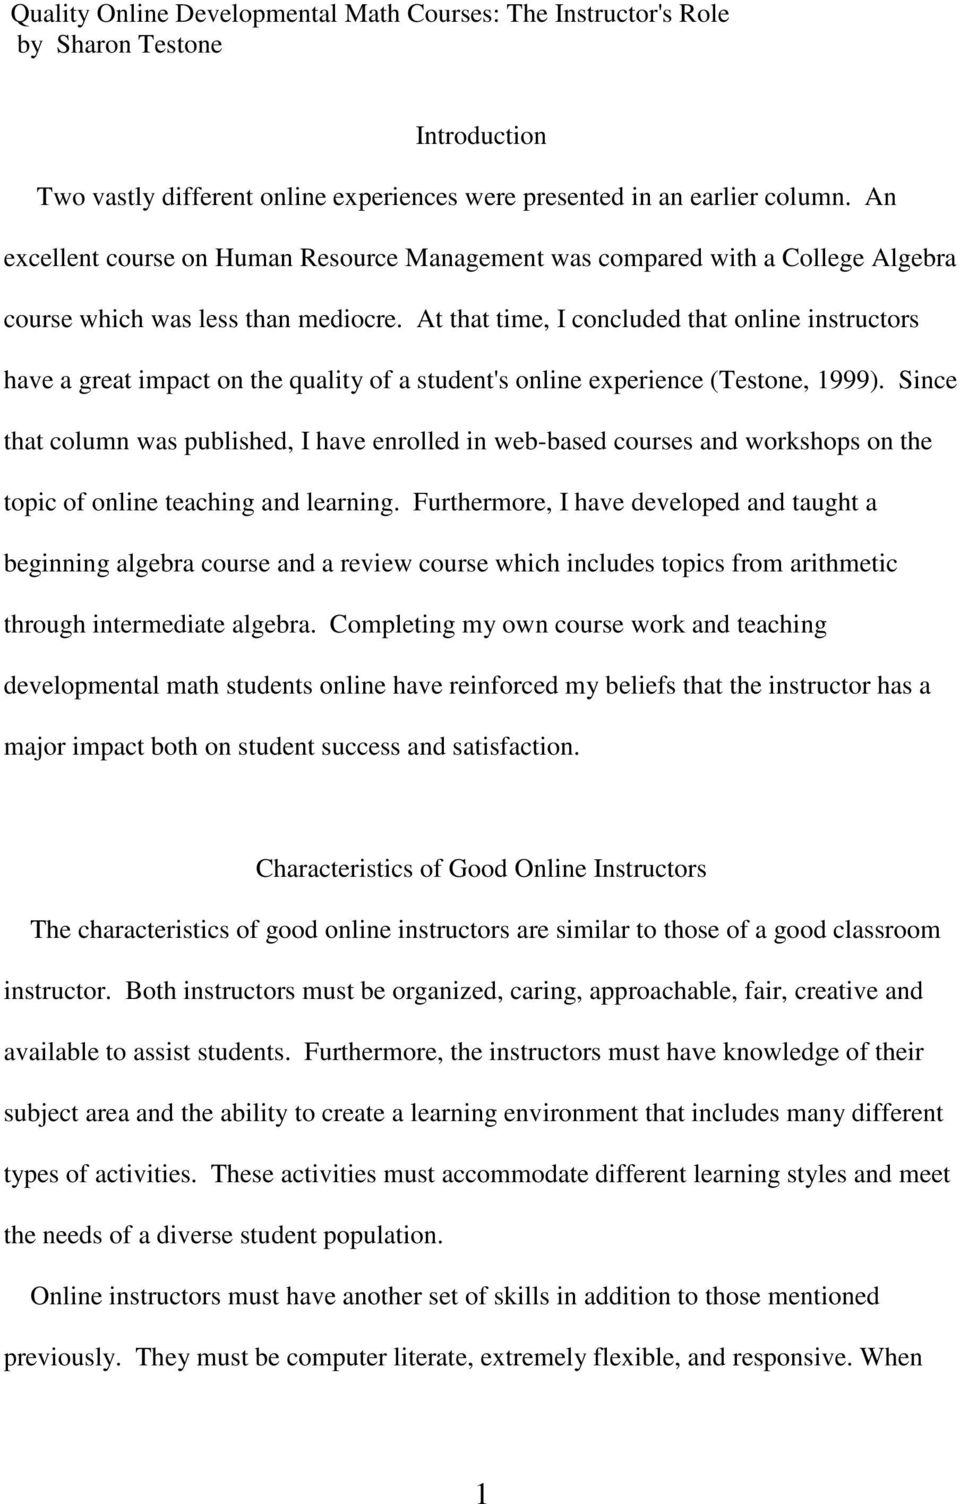 At that time, I concluded that online instructors have a great impact on the quality of a student's online experience (Testone, 1999).